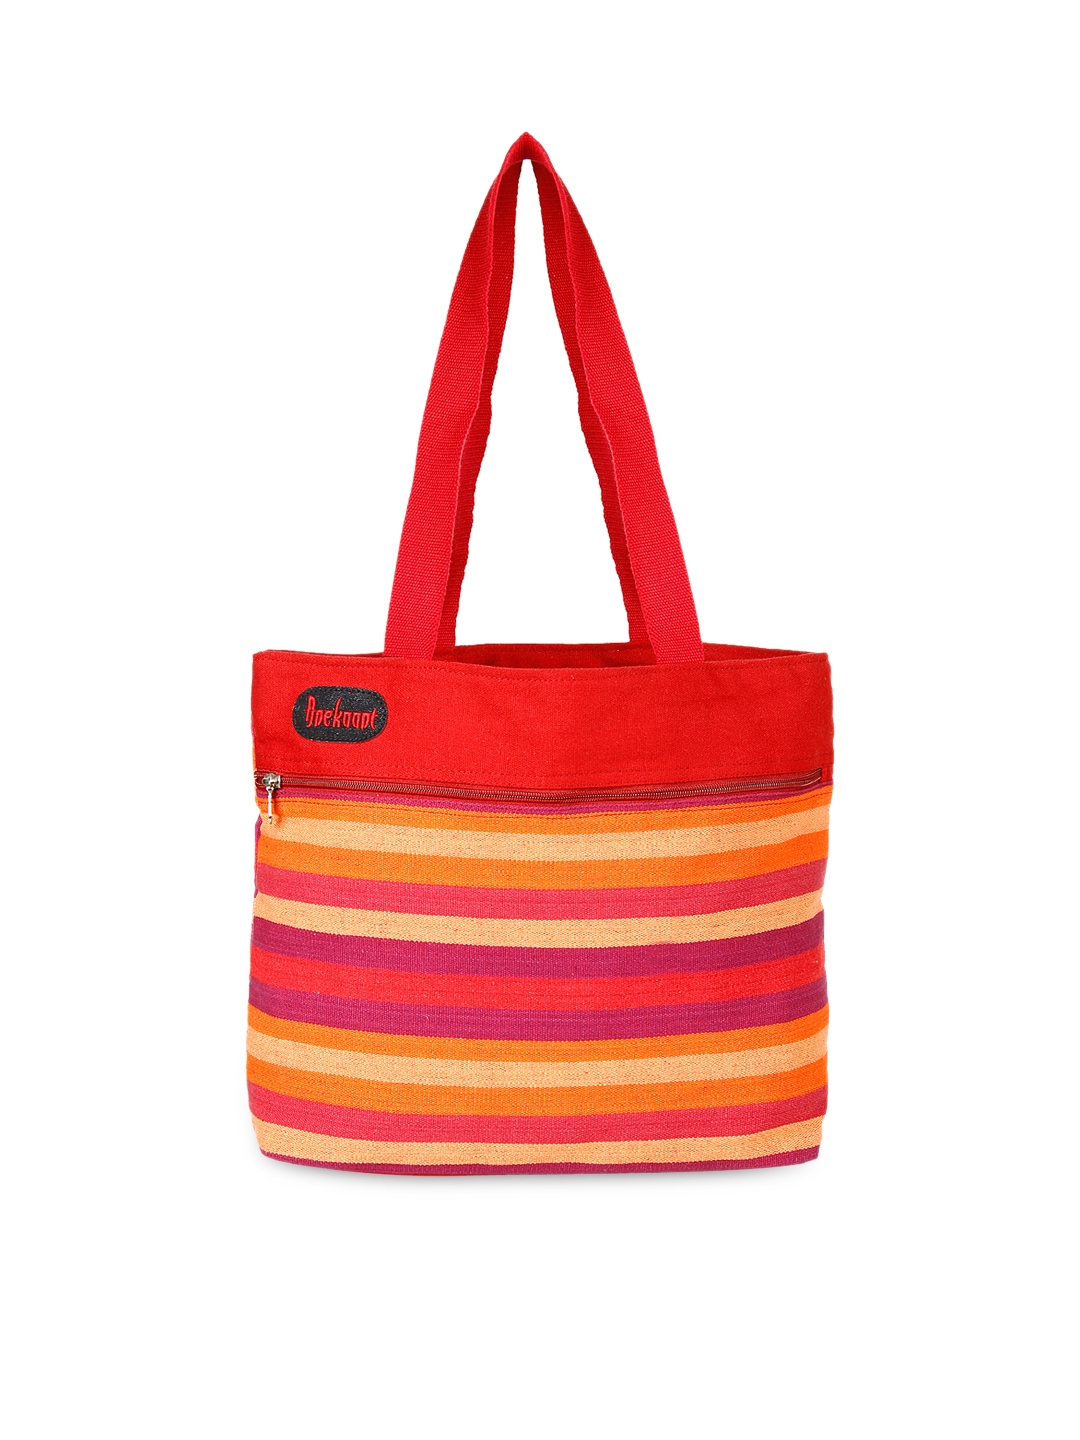 faadf4e70 Buy Anekaant Red Striped Canvas Tote Bag - Handbags for Women ...